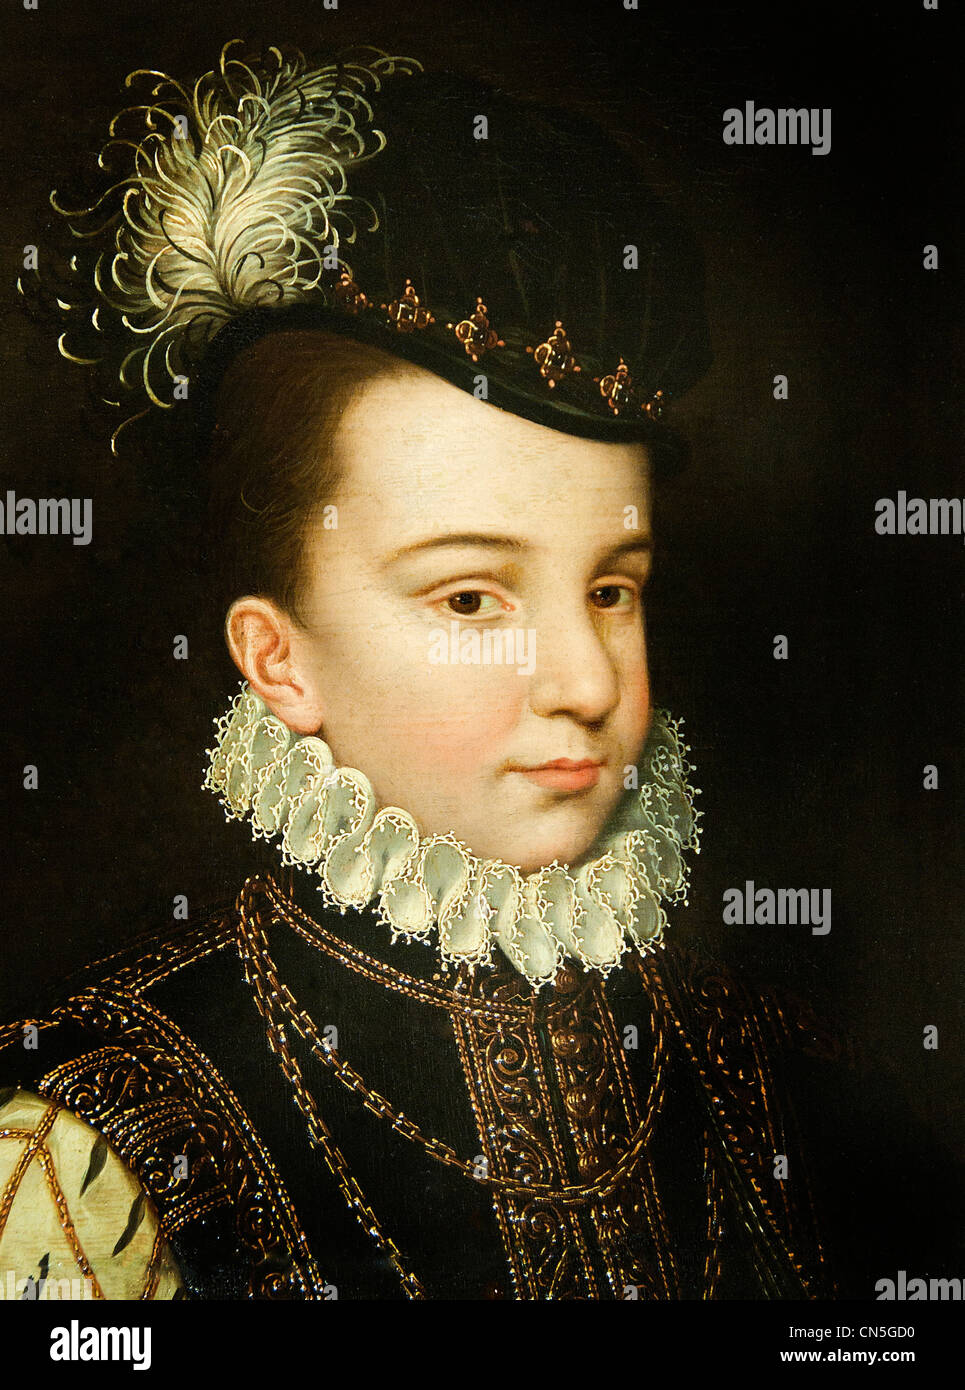 FRANÇOIS Hercule de France duc d'Alençon son of Henry II of France and Catherine de Mediciby CLOUET - Stock Image